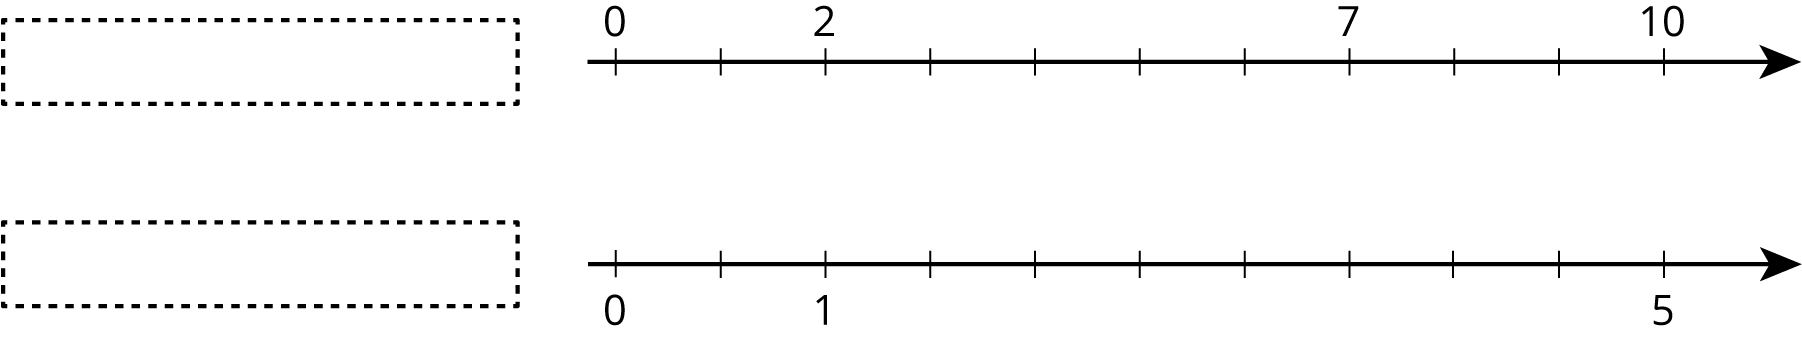 A double number line with 11 evenly spaced tick marks. For the top number line, a dashed box represents the title and the number 0 is on the first tick mark, 2 on the third, 7 on the eighth, and 10 on the eleventh. For the bottom number line, a dashed box represents the title and the number 0 is on the first tick mark, 1 on the third, and 5 on the eleventh.